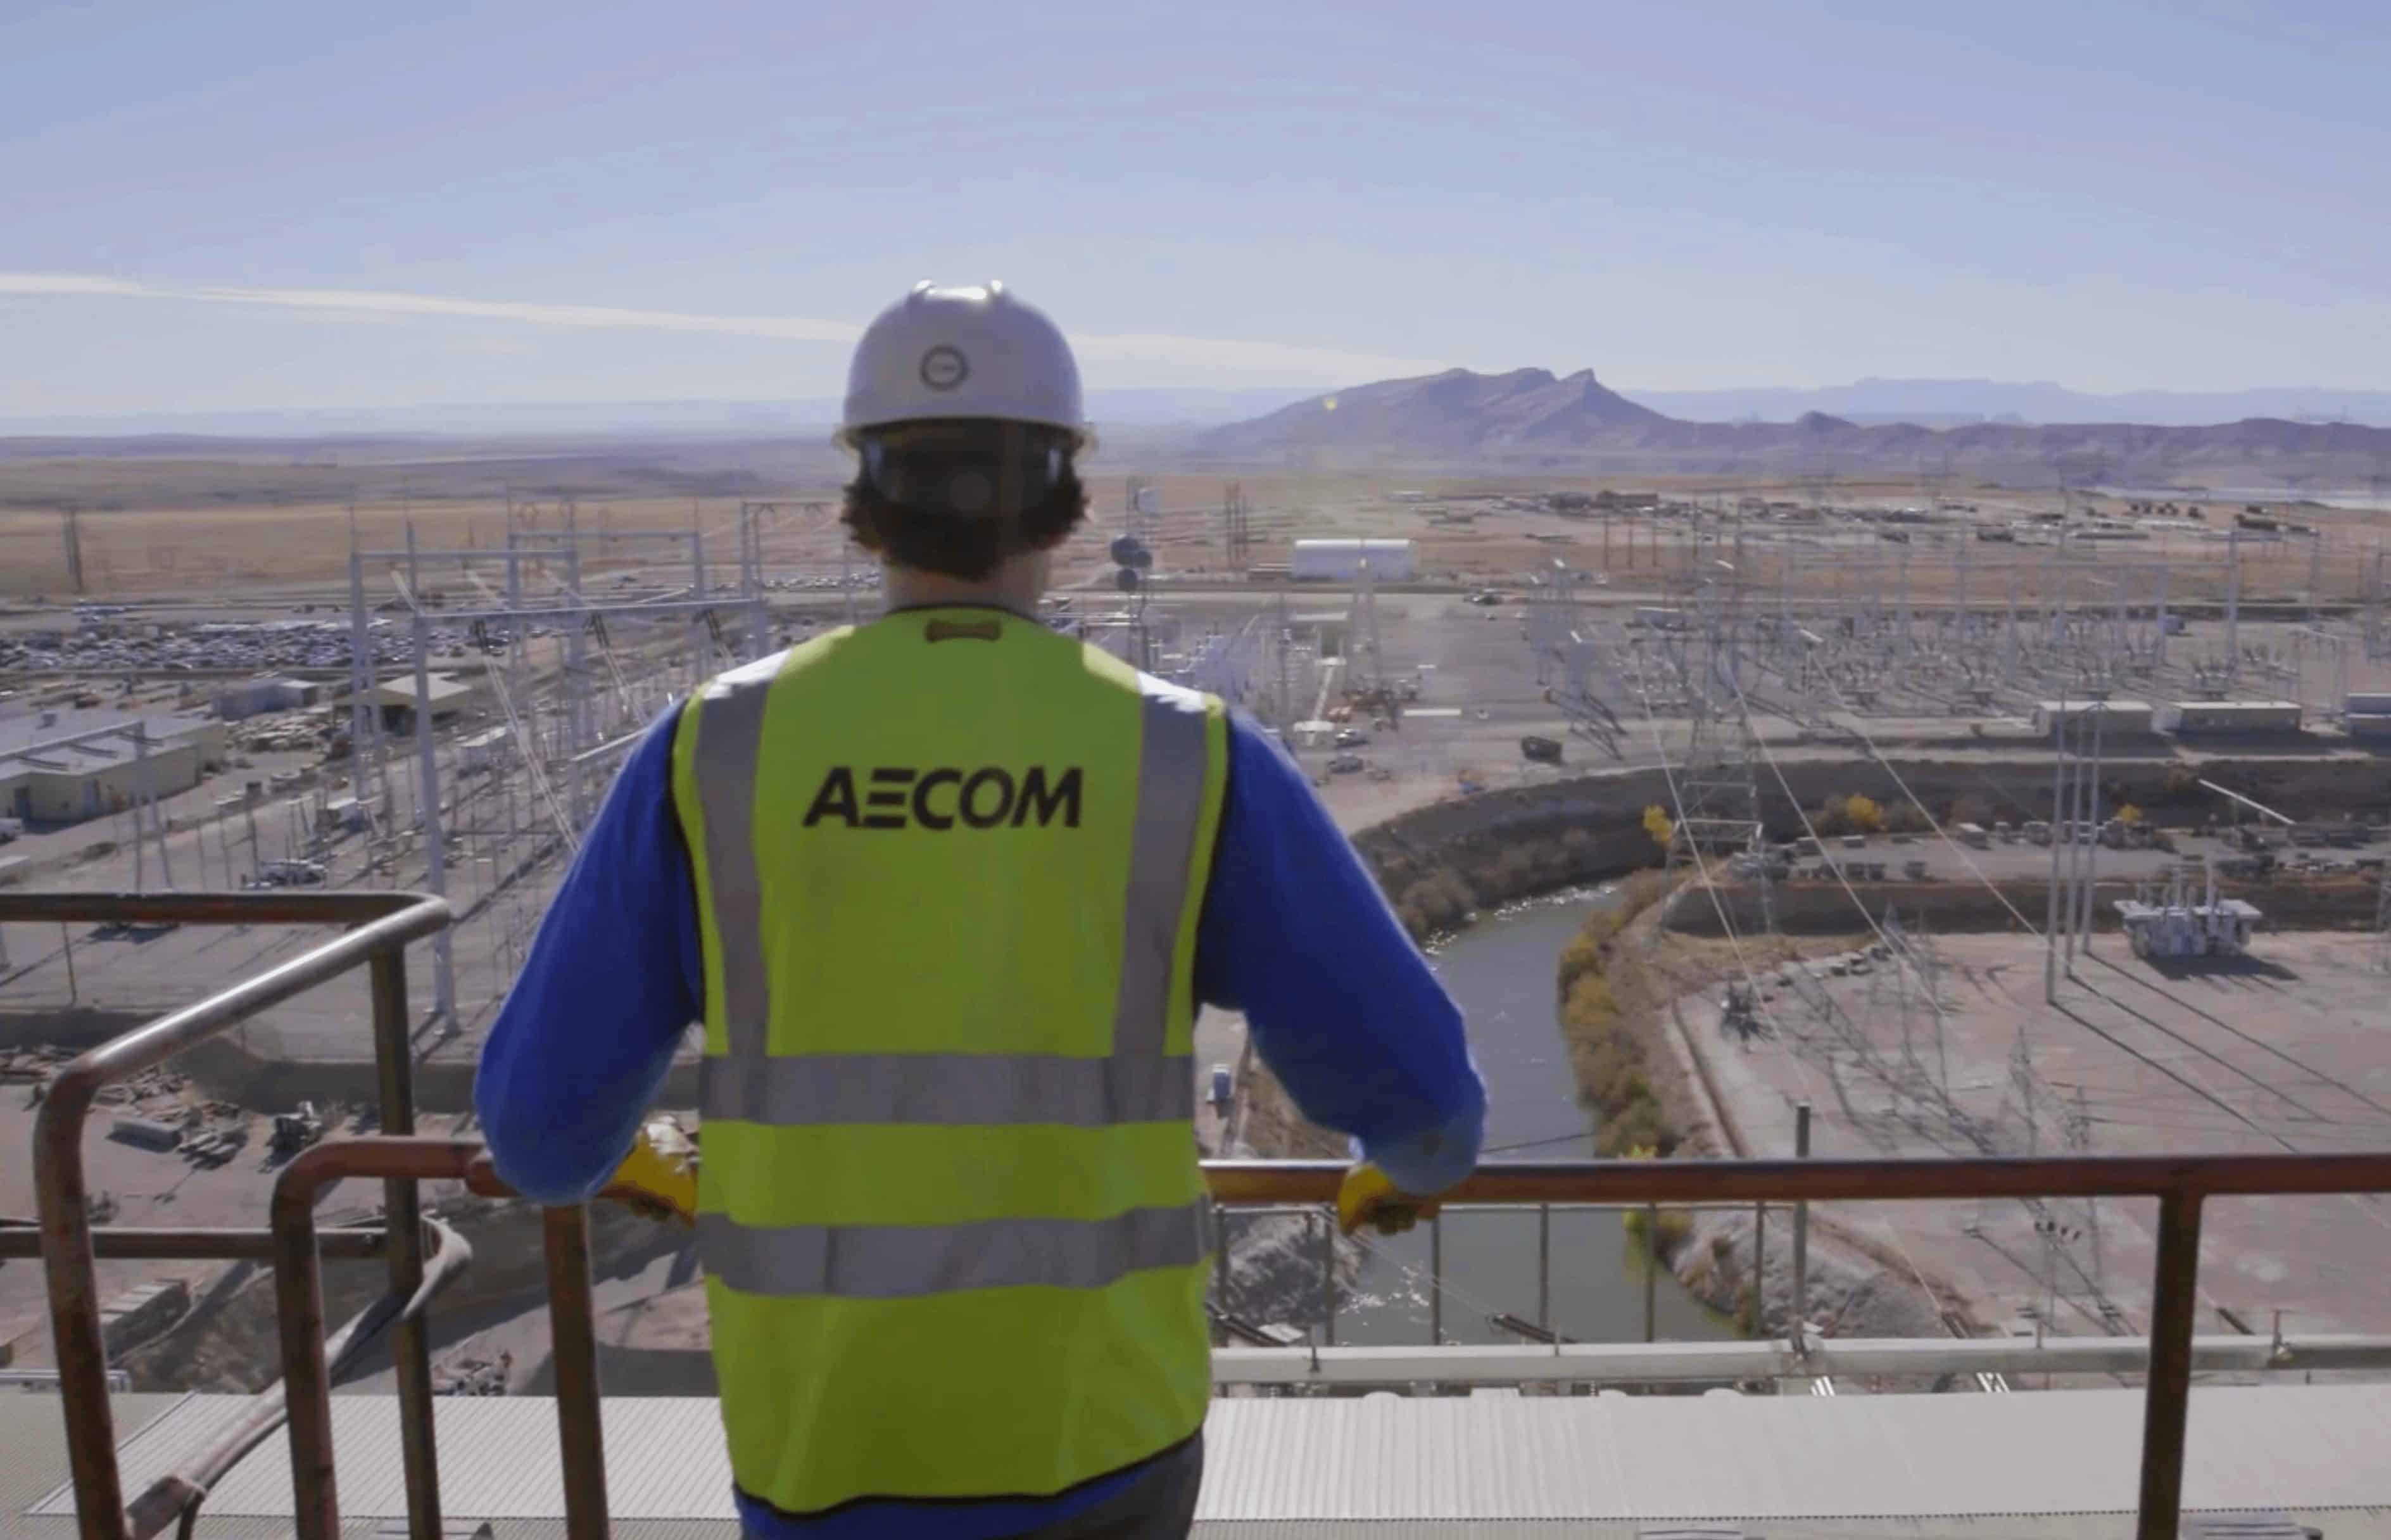 Over 180 Jobs Are Available @ AECOM, Apply Today & Get Hired! – June 2021 Job Postings